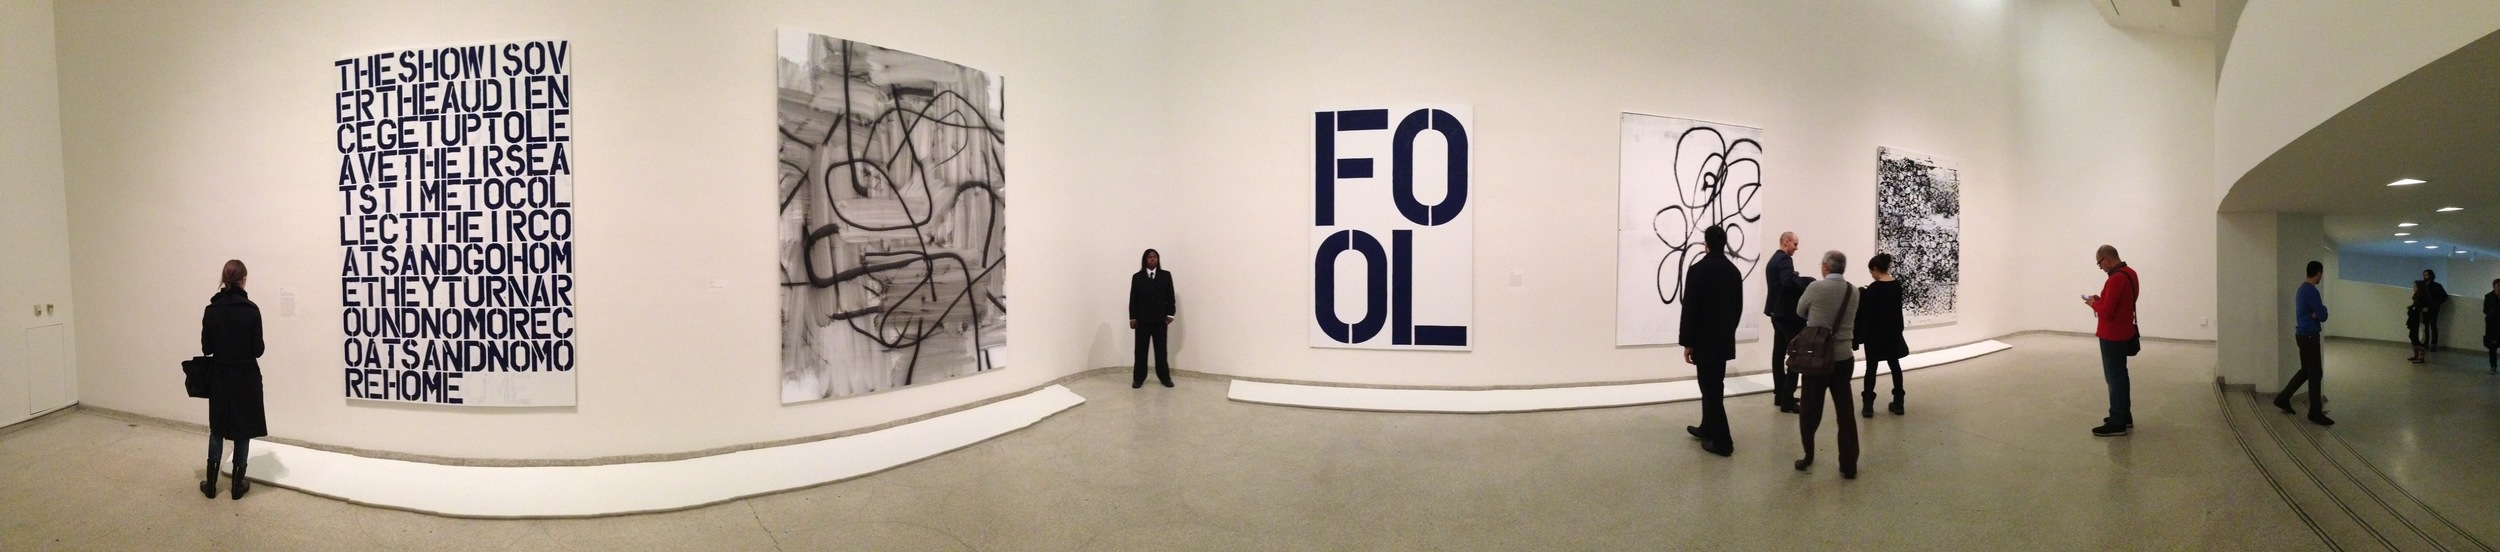 Exhibition Image,  Christopher Wool,  Guggenheim Museum, New York Photo Credit: Cincala Art Advisory